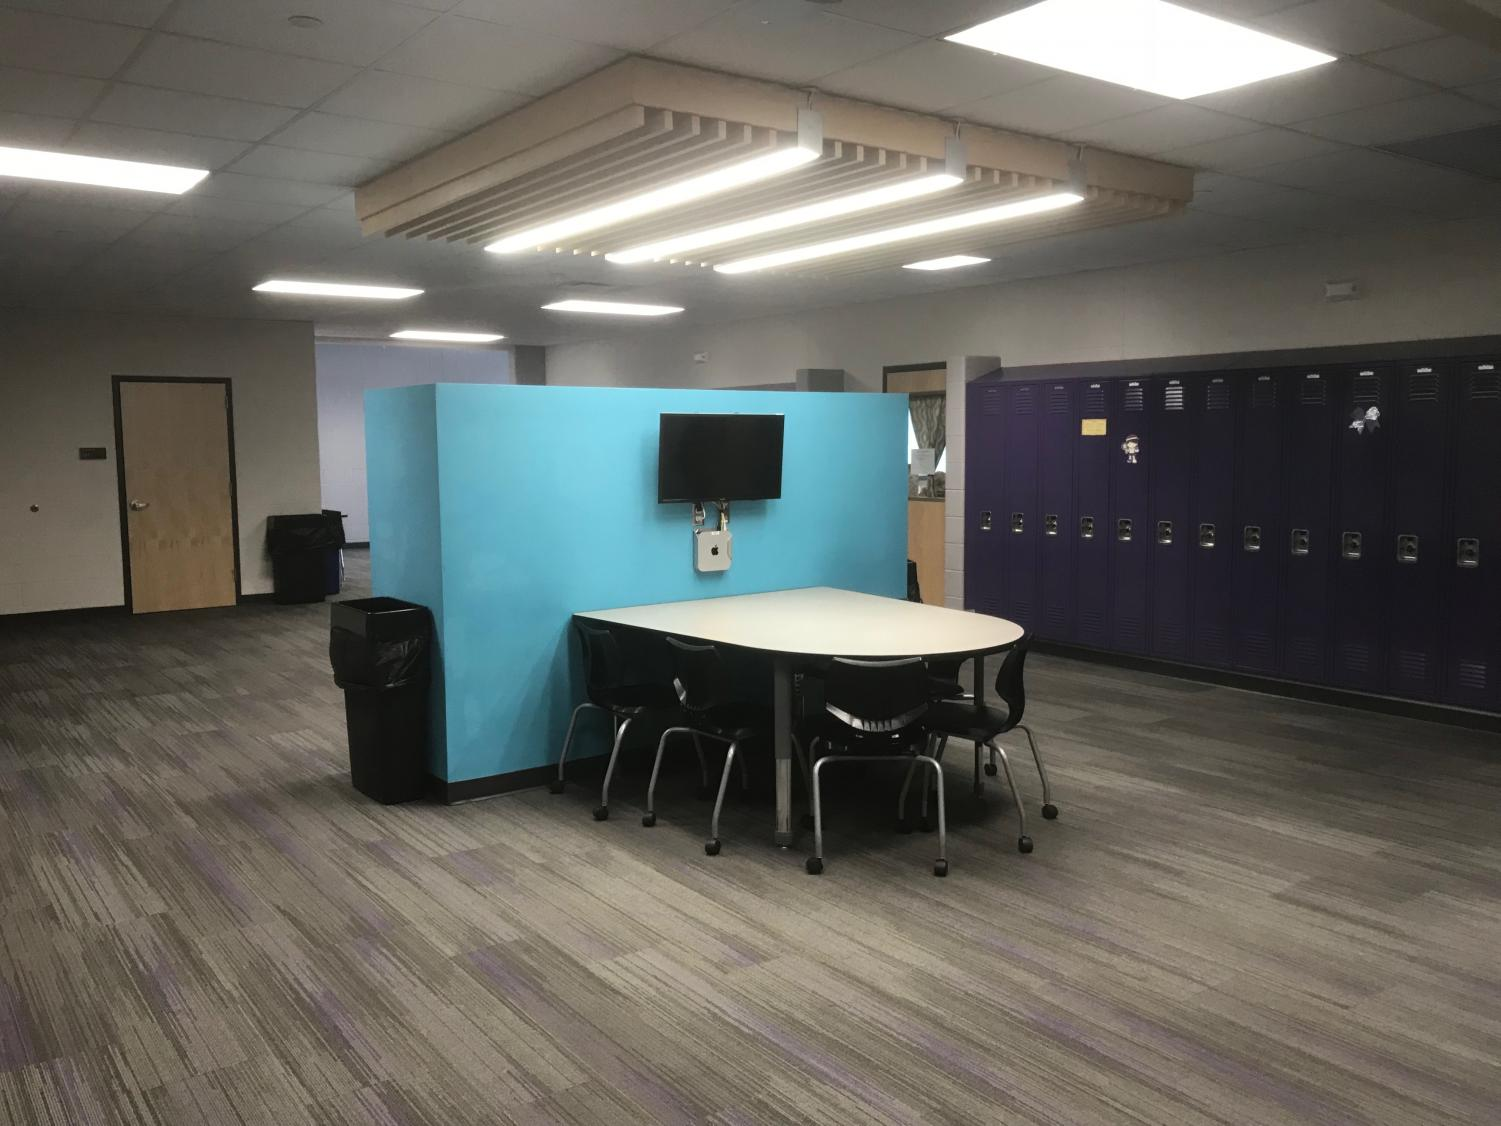 One of the student learning centers located on the second floor.